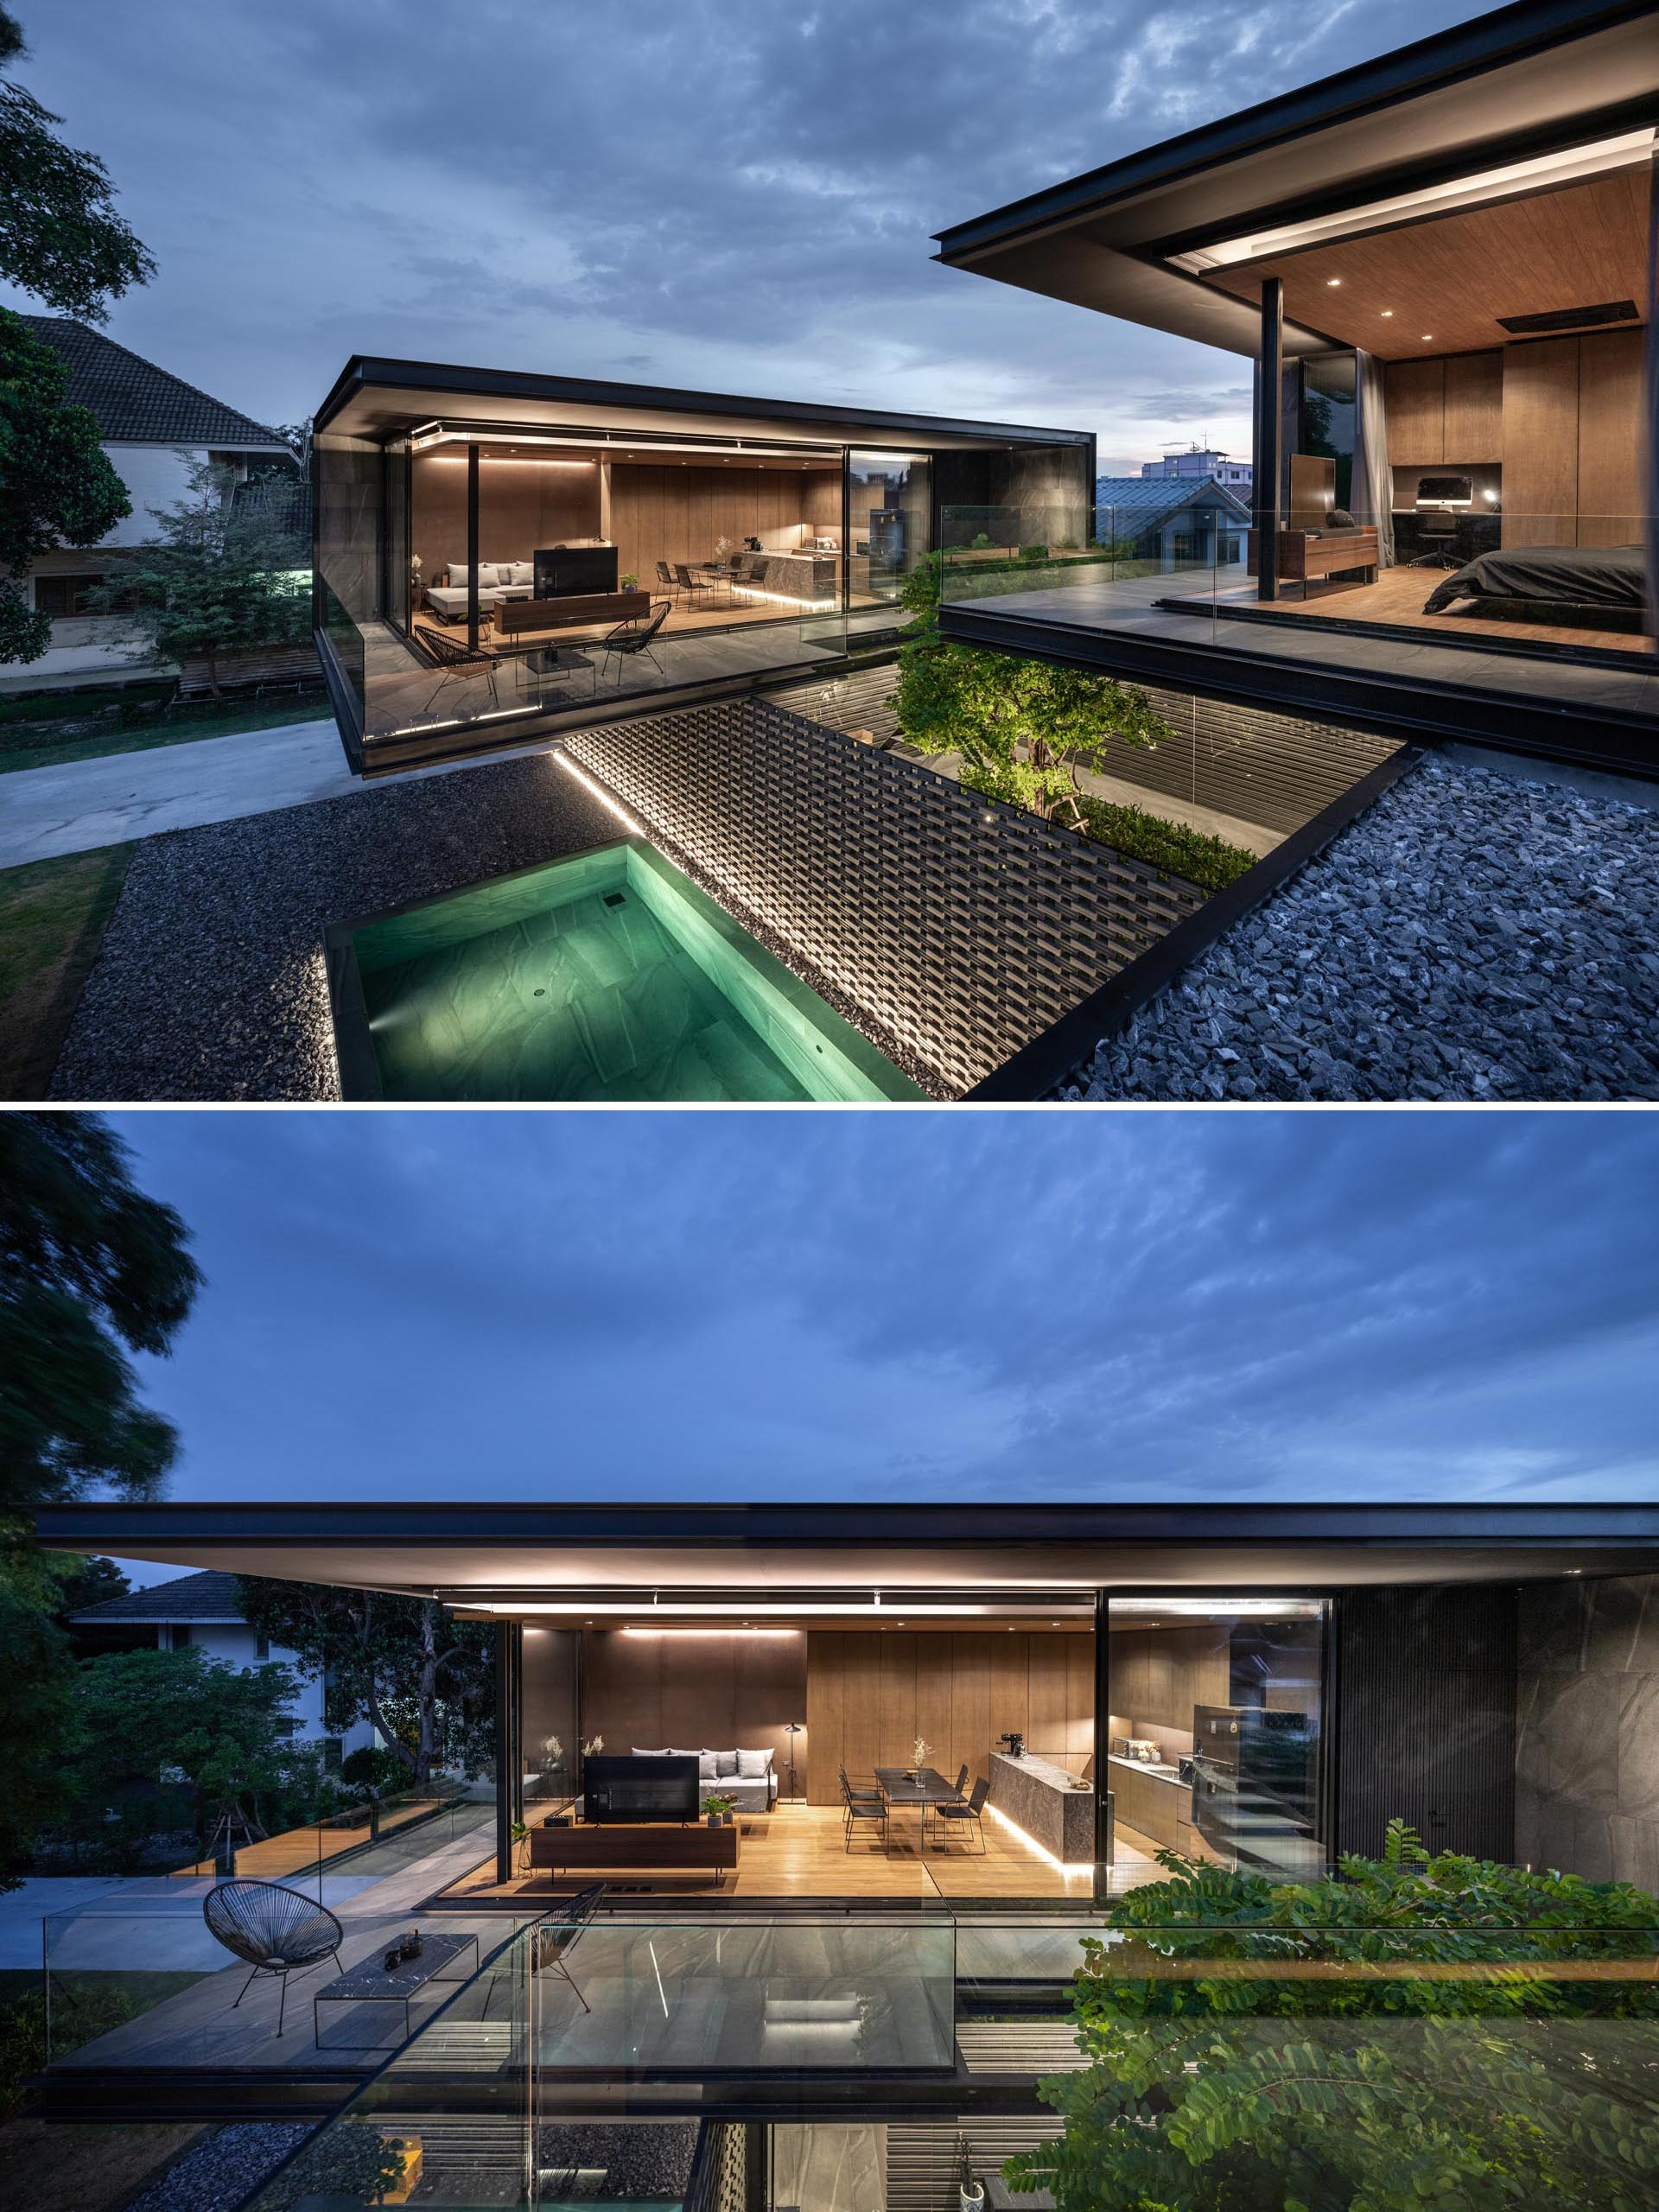 Indirect lighting has been used to highlight the lines of this modern house.